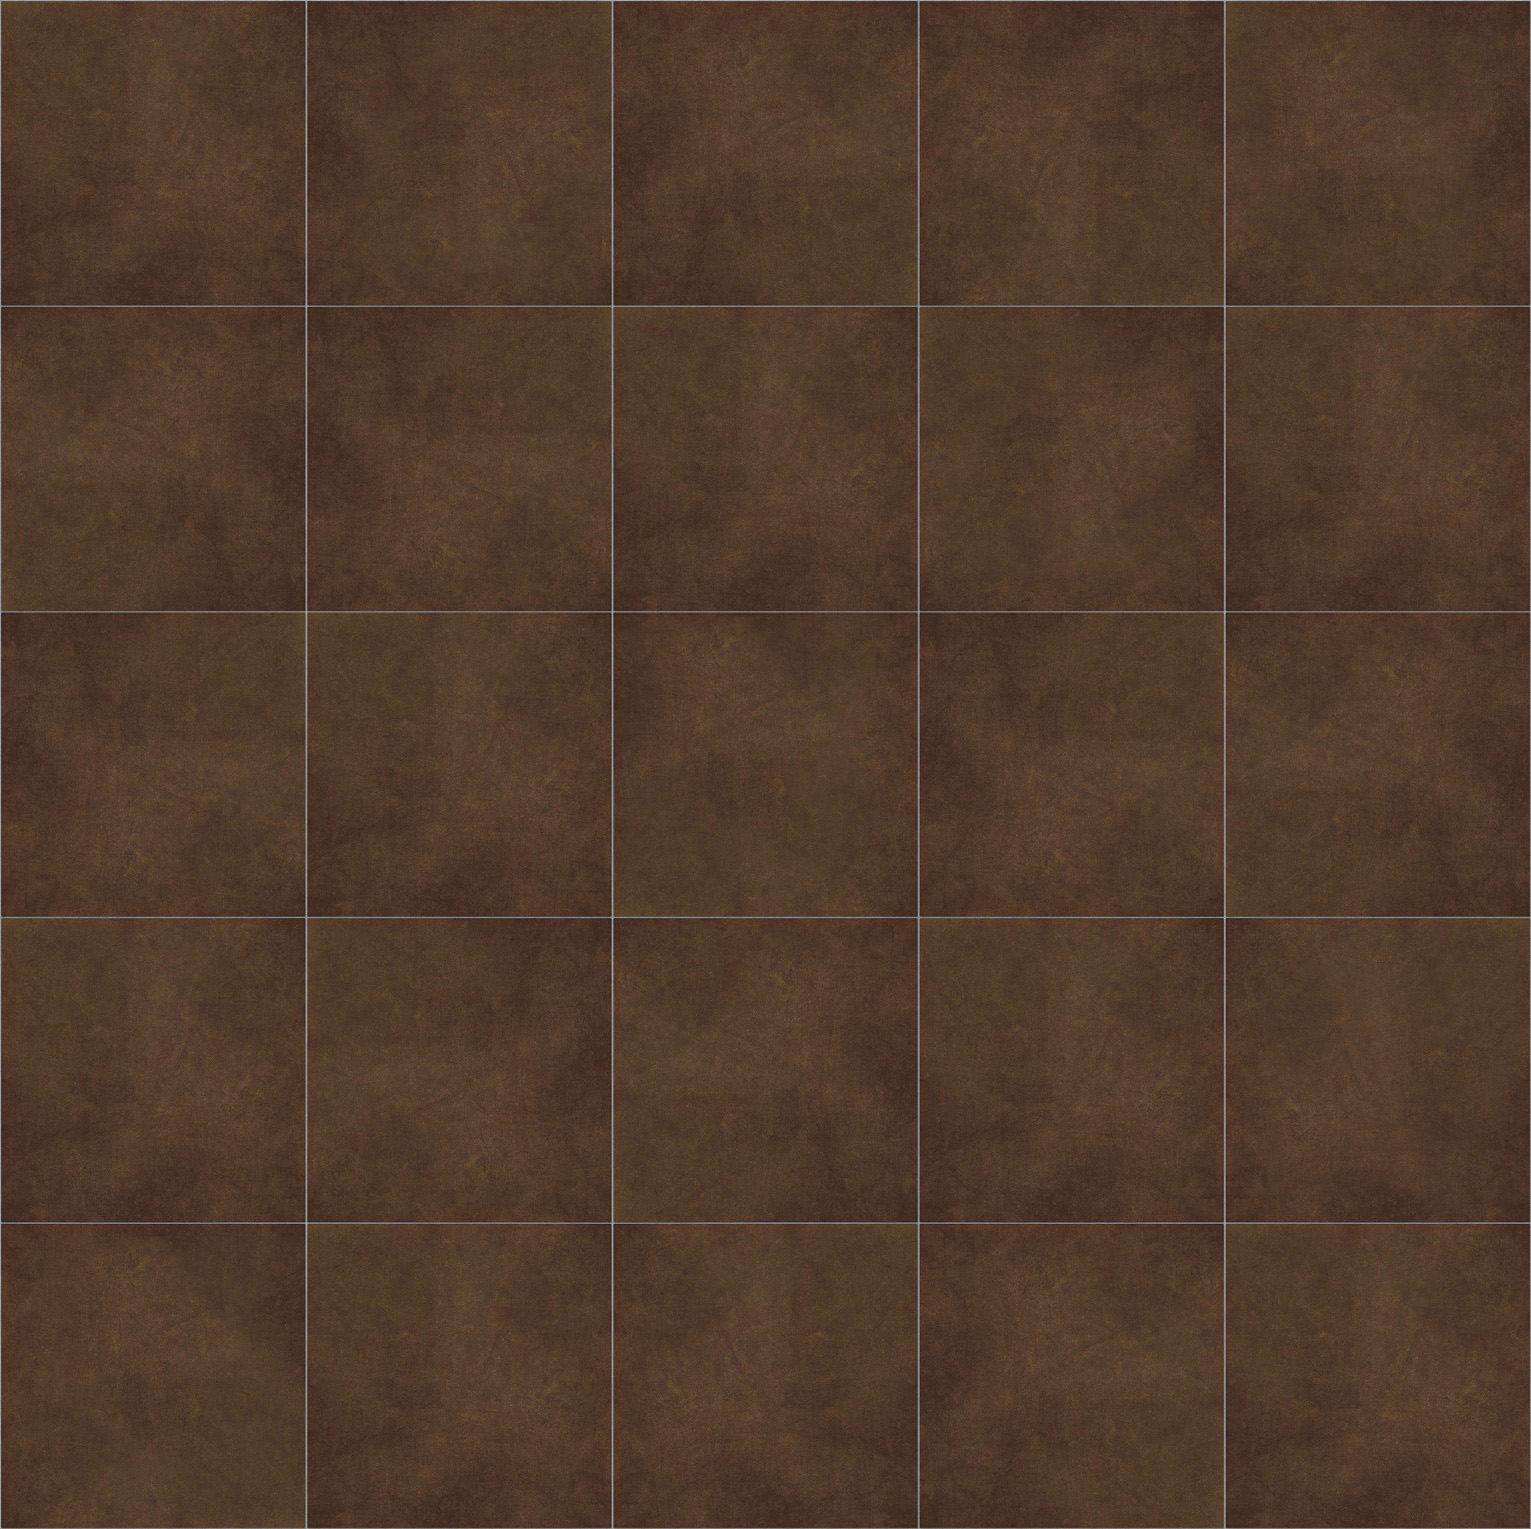 Texture Seamless Tile Floor